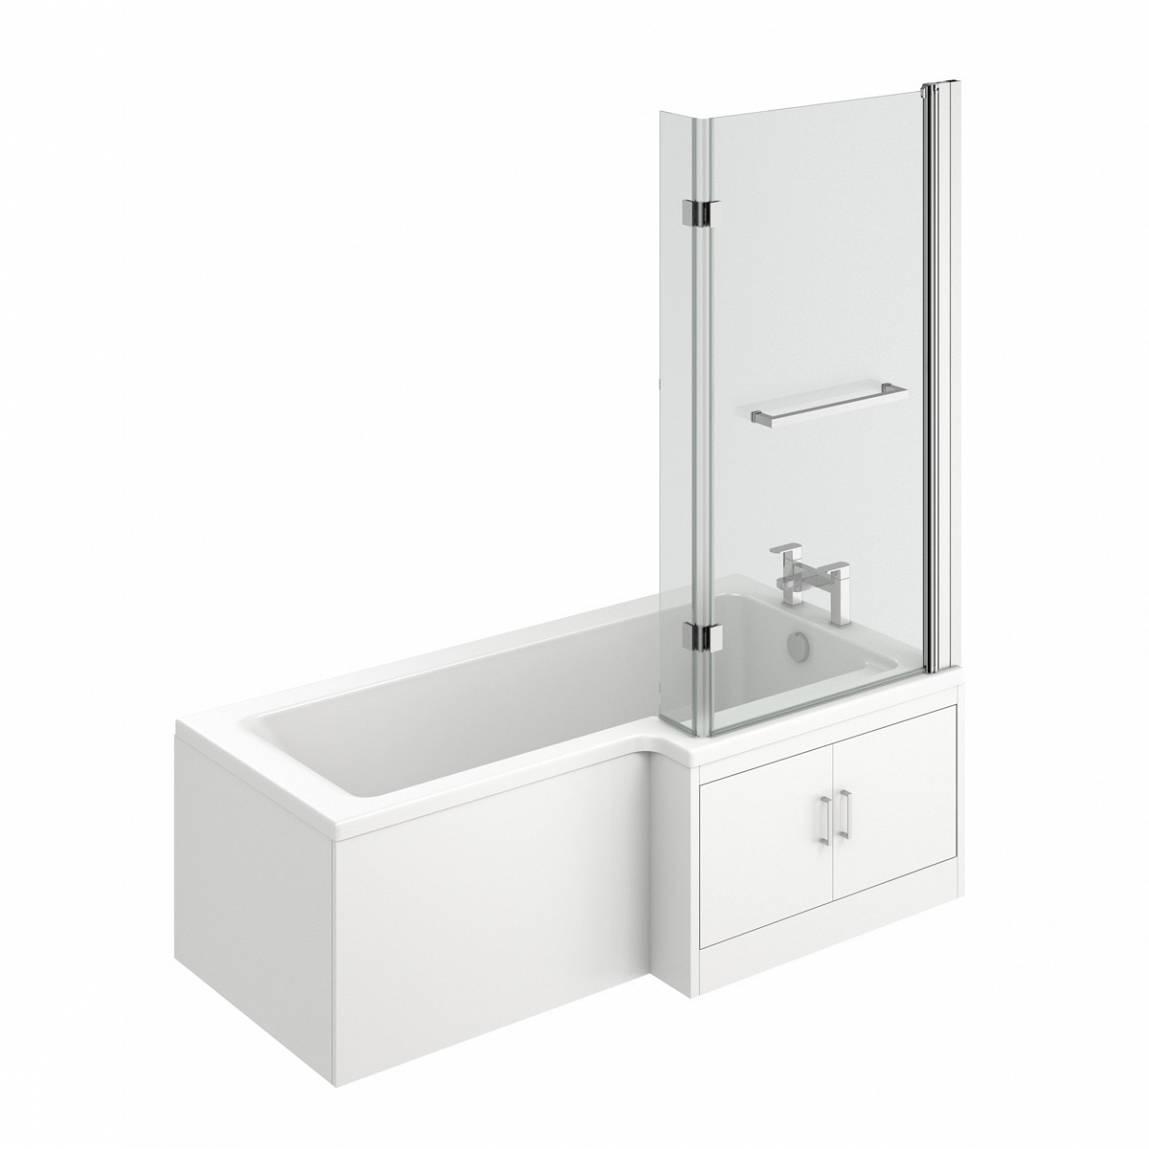 Image of MySpace Water Saving L Shape Shower Bath Right Hand with Storage Panel & 8mm Luxury Hinged Screen with Towel Rail